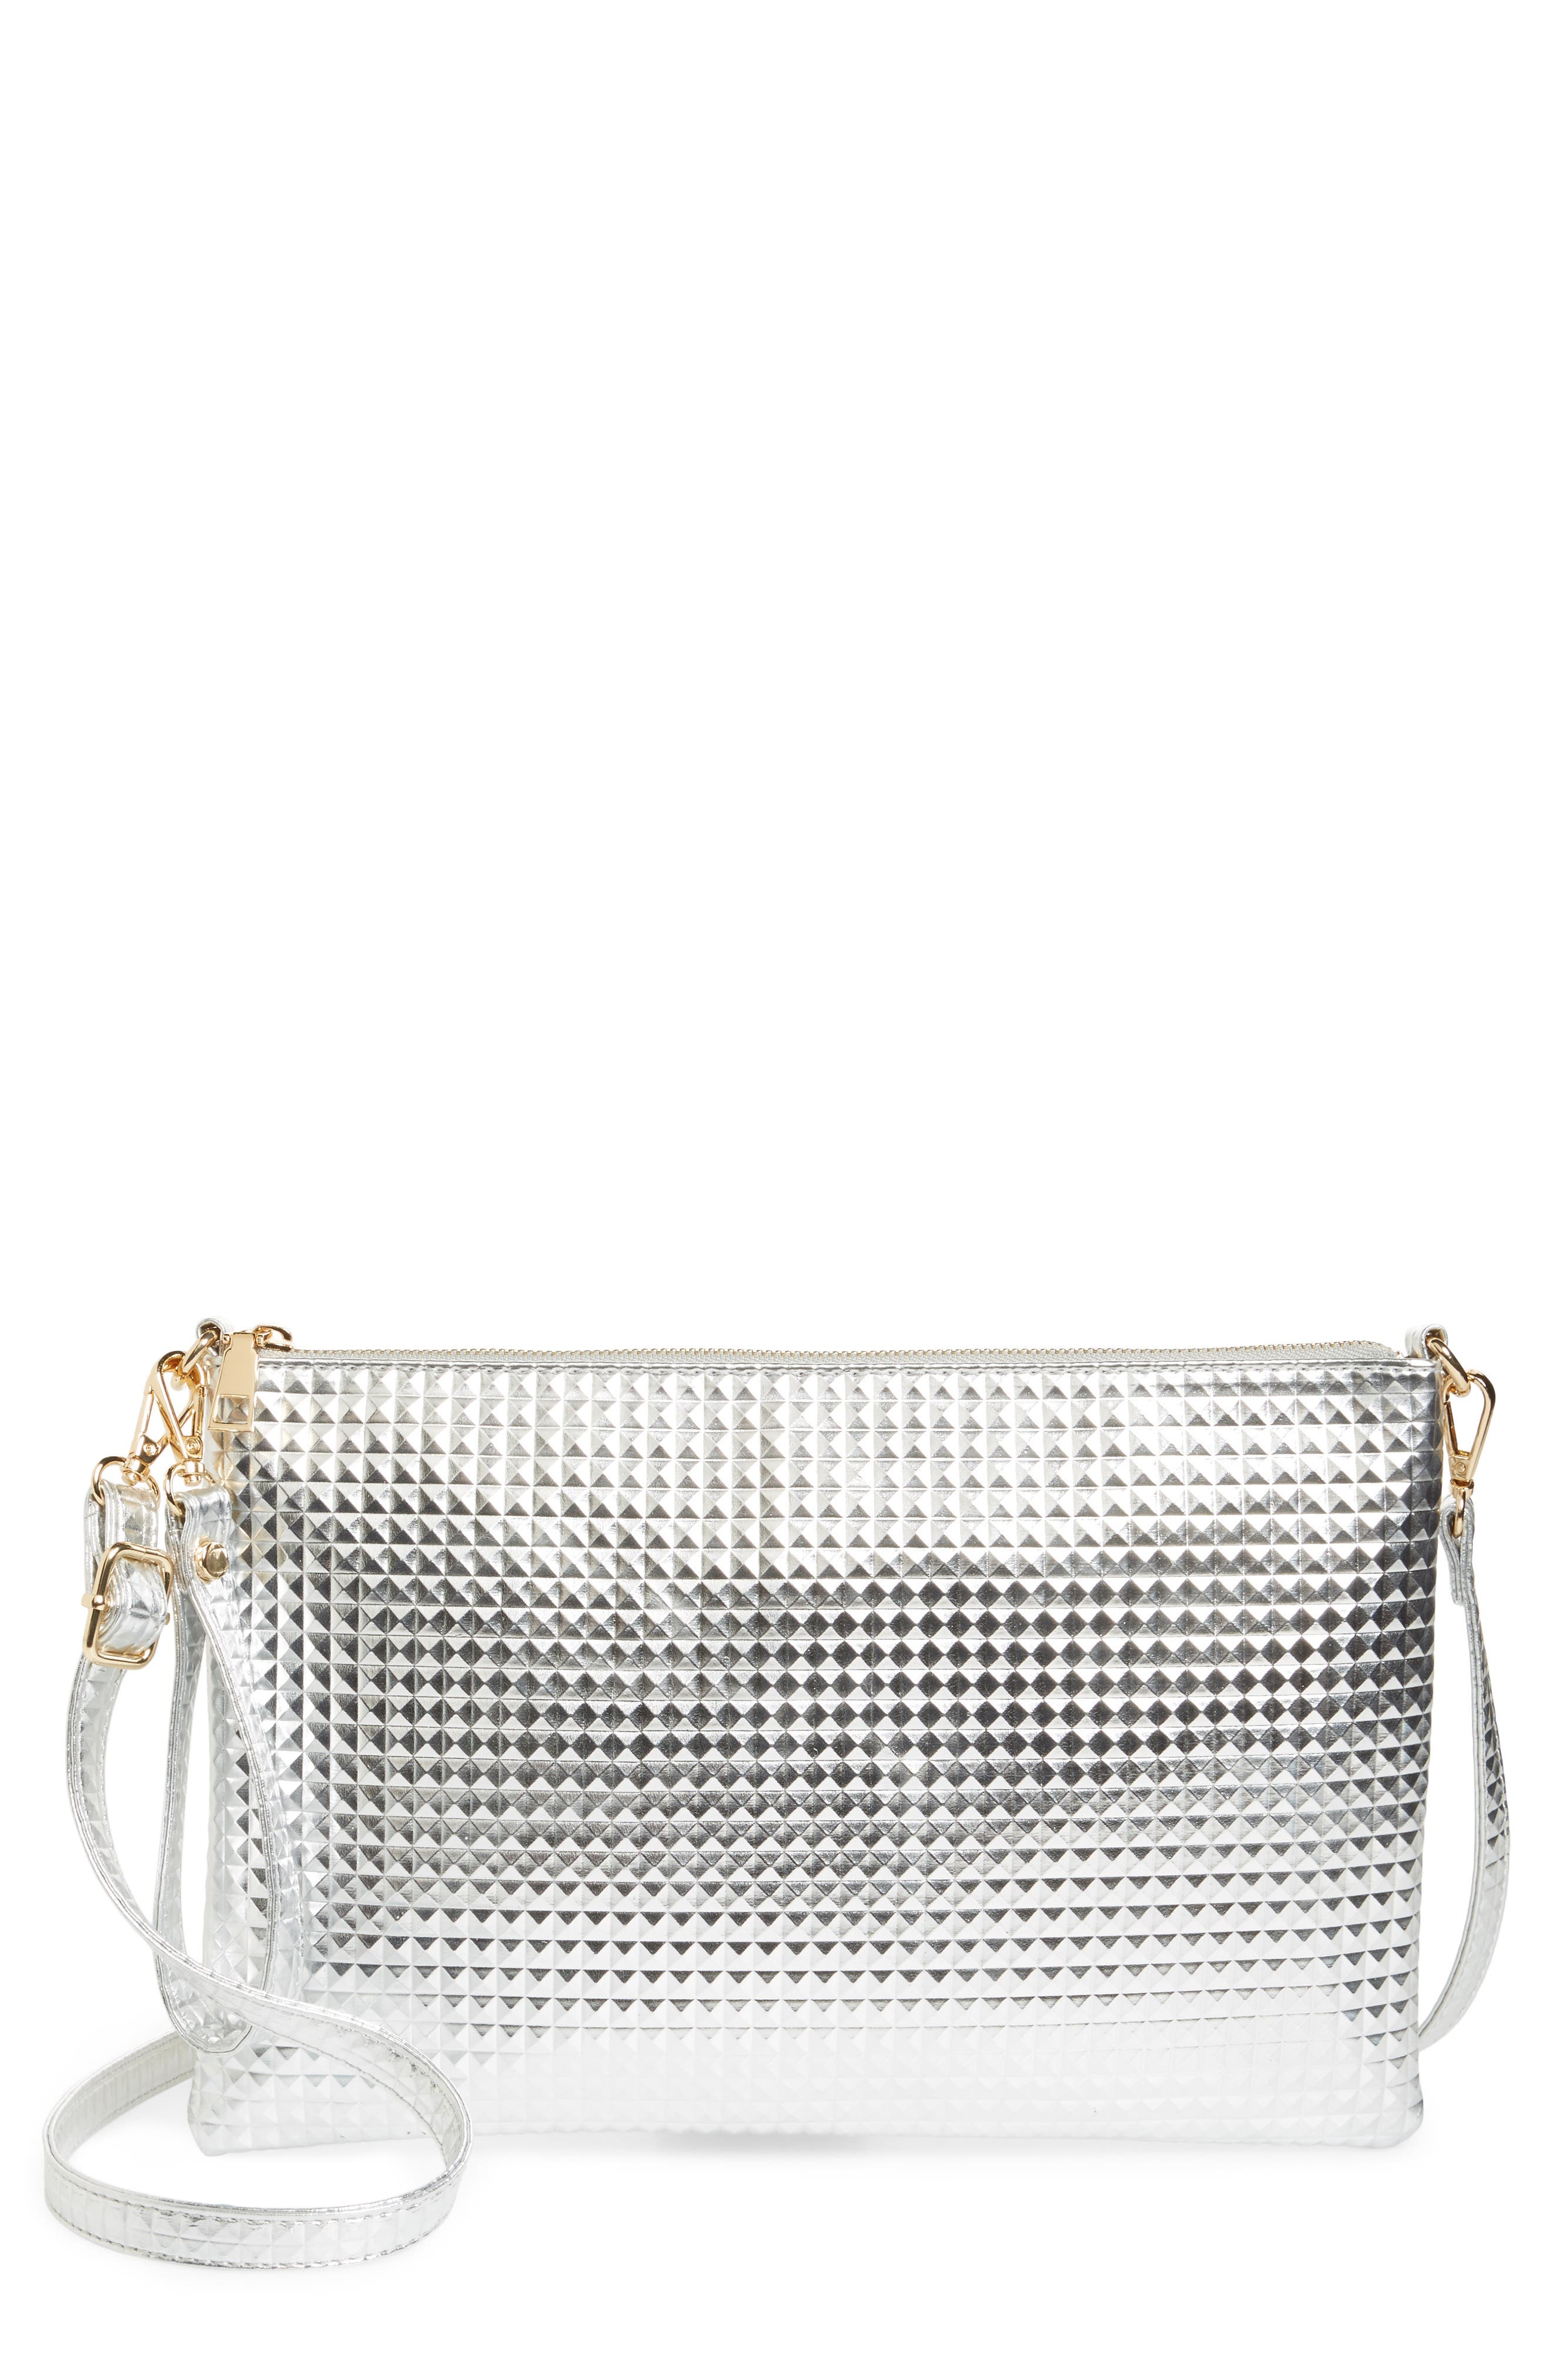 Evelyn K Large Textured Metallic Faux Leather Pouch